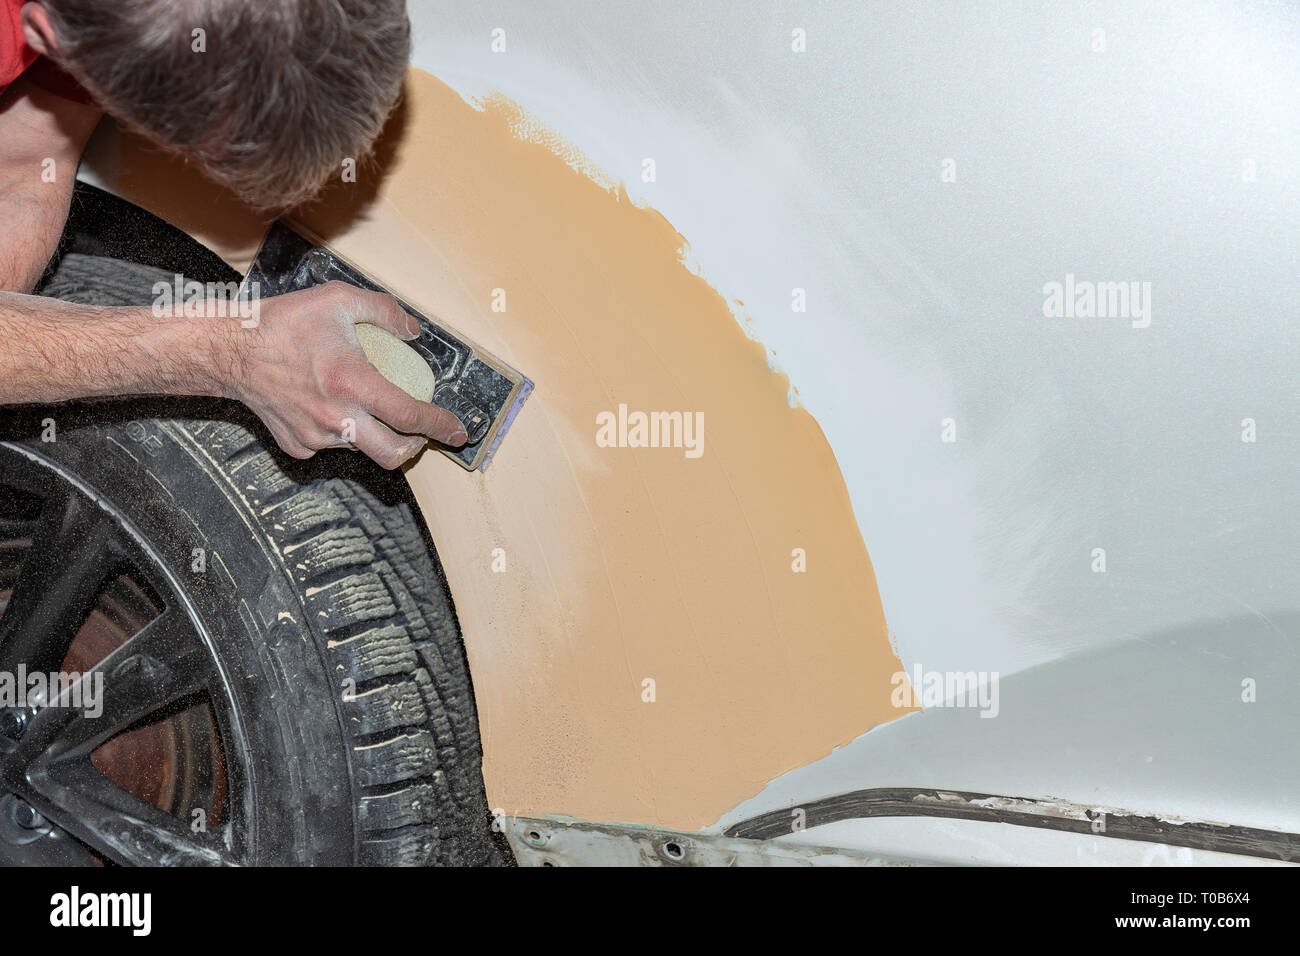 Preparation for painting a car element using emery sender by a service technician leveling out before applying a primer after damage to a part of the  - Stock Image